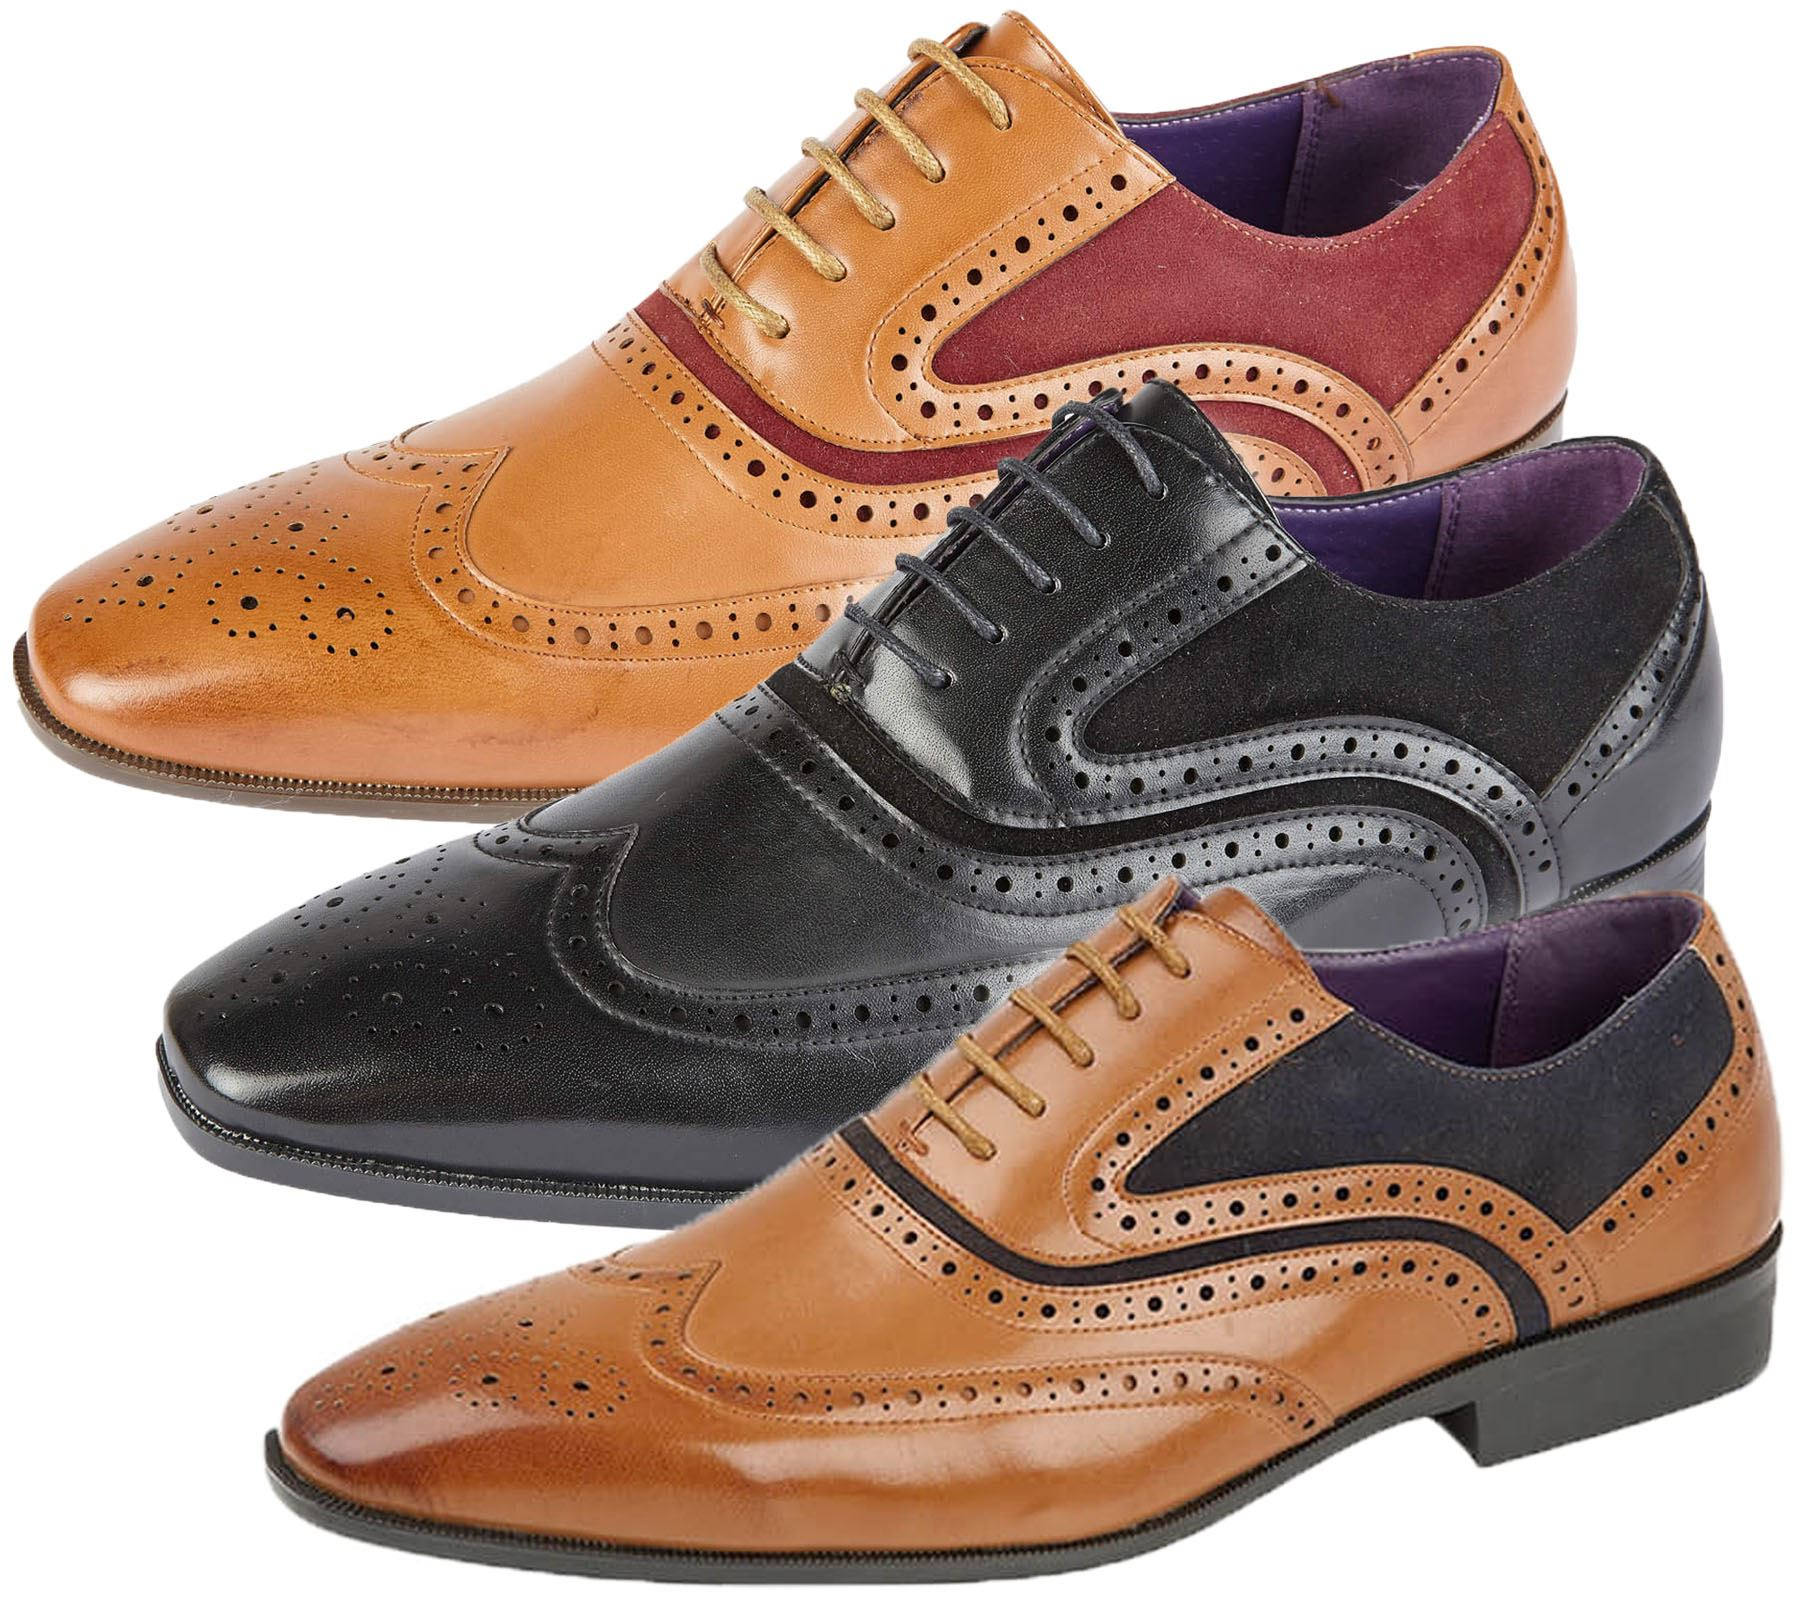 Mens Leather Wedding Smart Brogue Dress Formal Office Lace up Tan Shoes Size